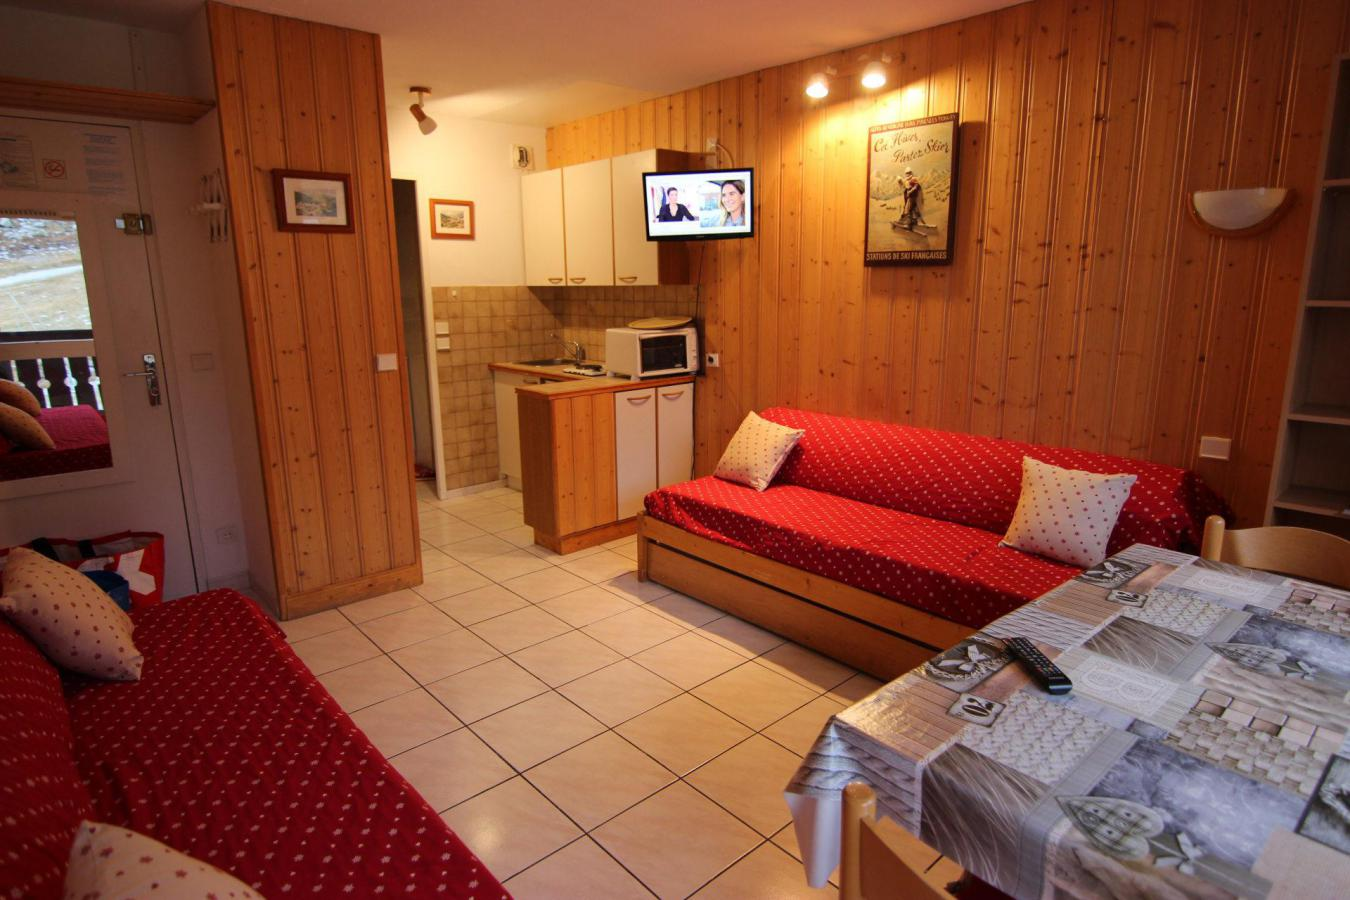 Location au ski Studio 2 personnes (625) - Residence De L'olympic - Val Thorens - Table